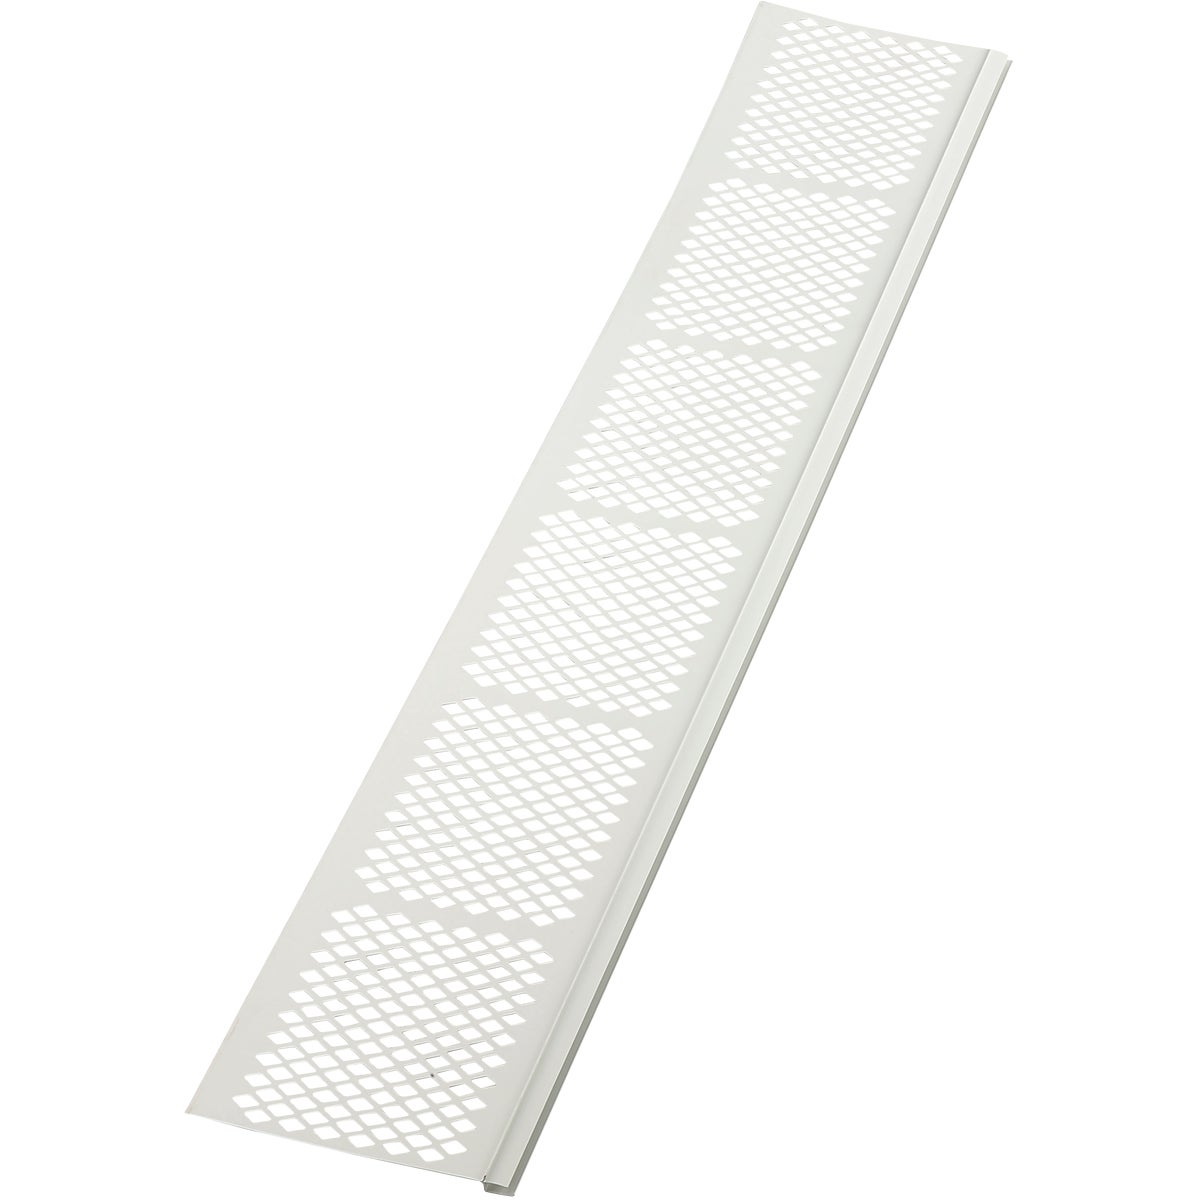 3' WH VINYL GUTTER GUARD - 85370 by Amerimax Home Prod